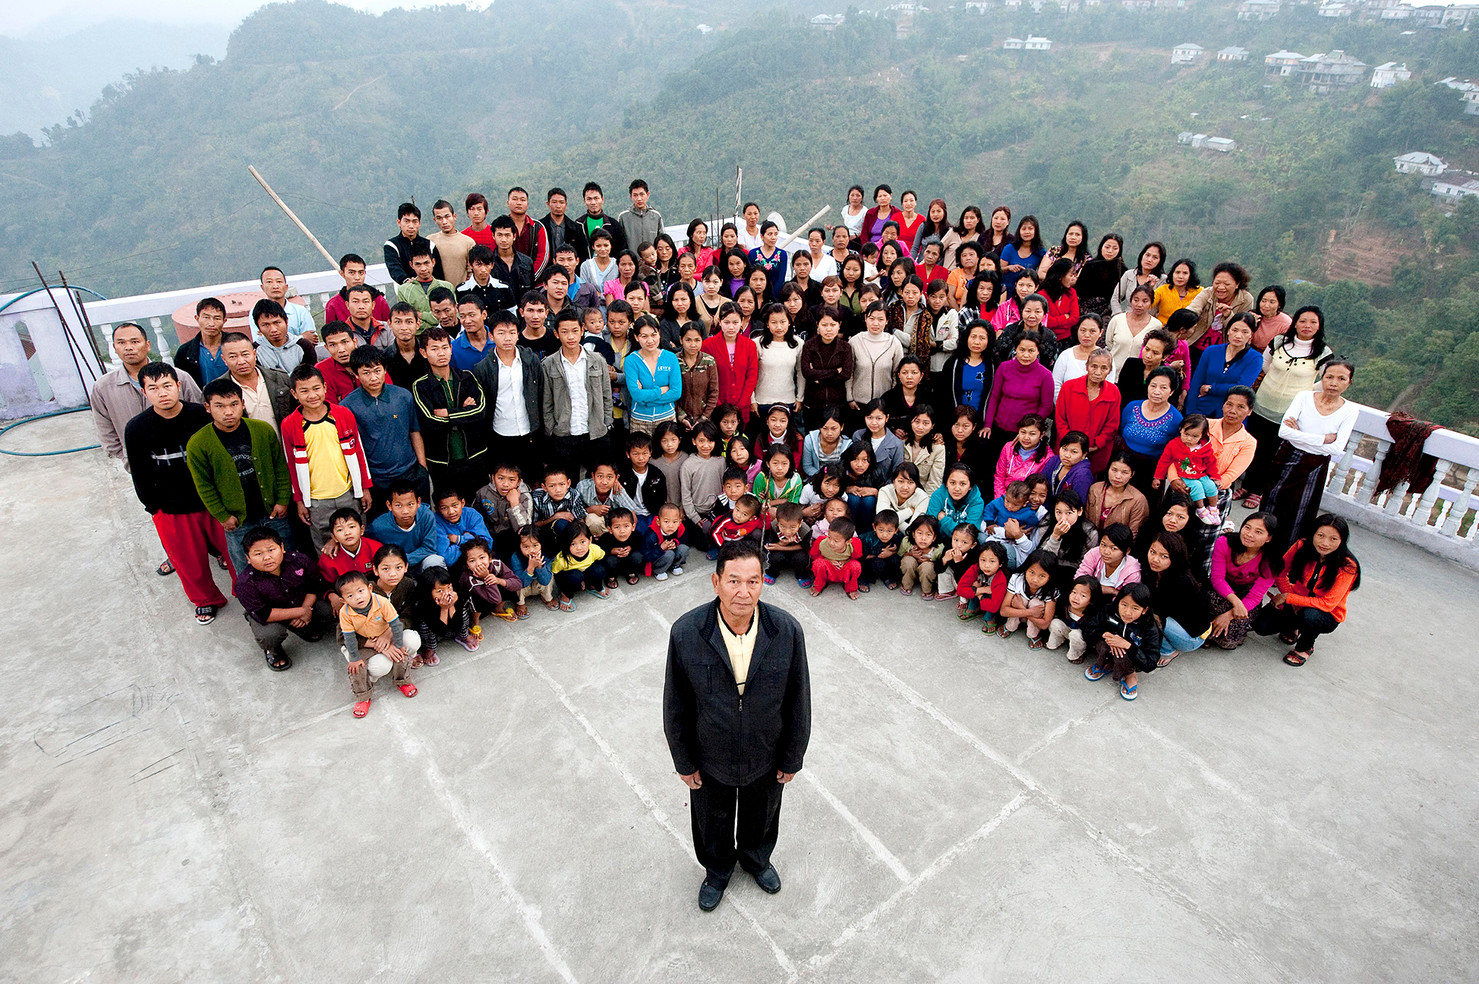 The Worlds Largest Family. Baktawng, Mizoram, India. Ziona Chana lives with his 39 wives, 94 children, 14 daughters-in-law and 33 grand children in the mountainous region in north east India. The family are self sufficient growing all their fruit and vegetables and rearing their own chickens and pigs.